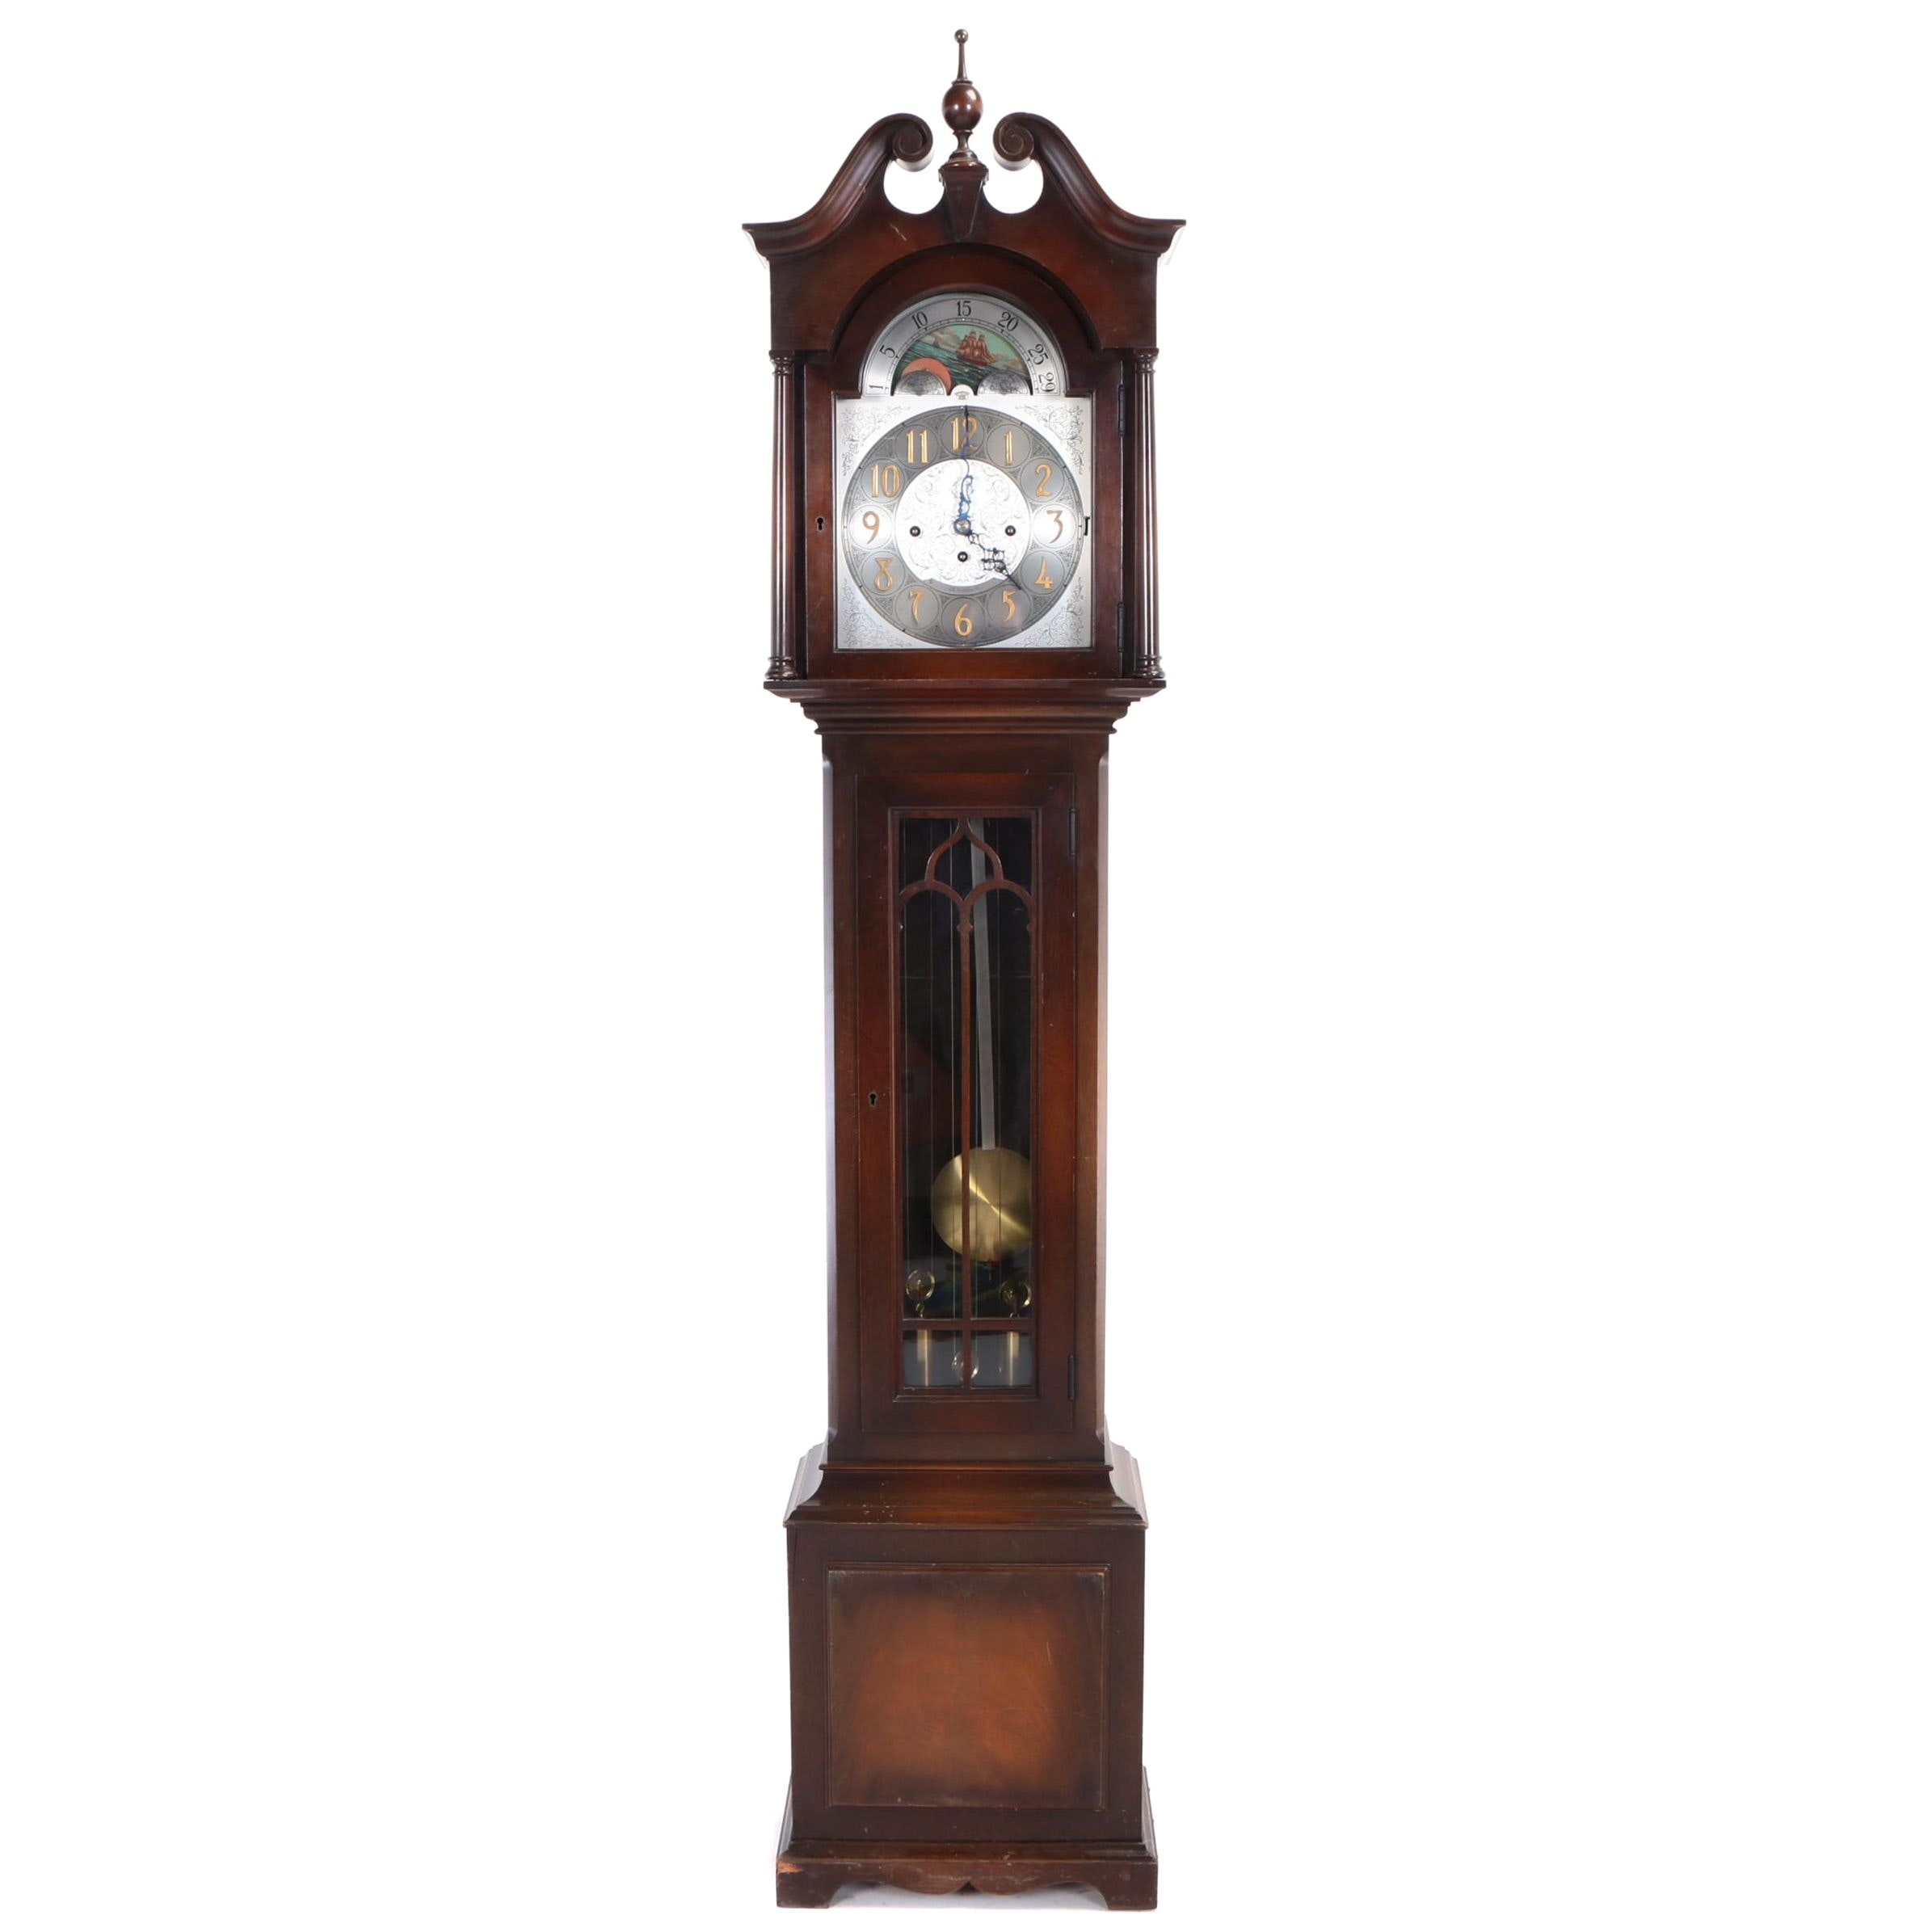 Herschede Hall Clock Co., Mahogany Tall Case Clock, Early 20th Century